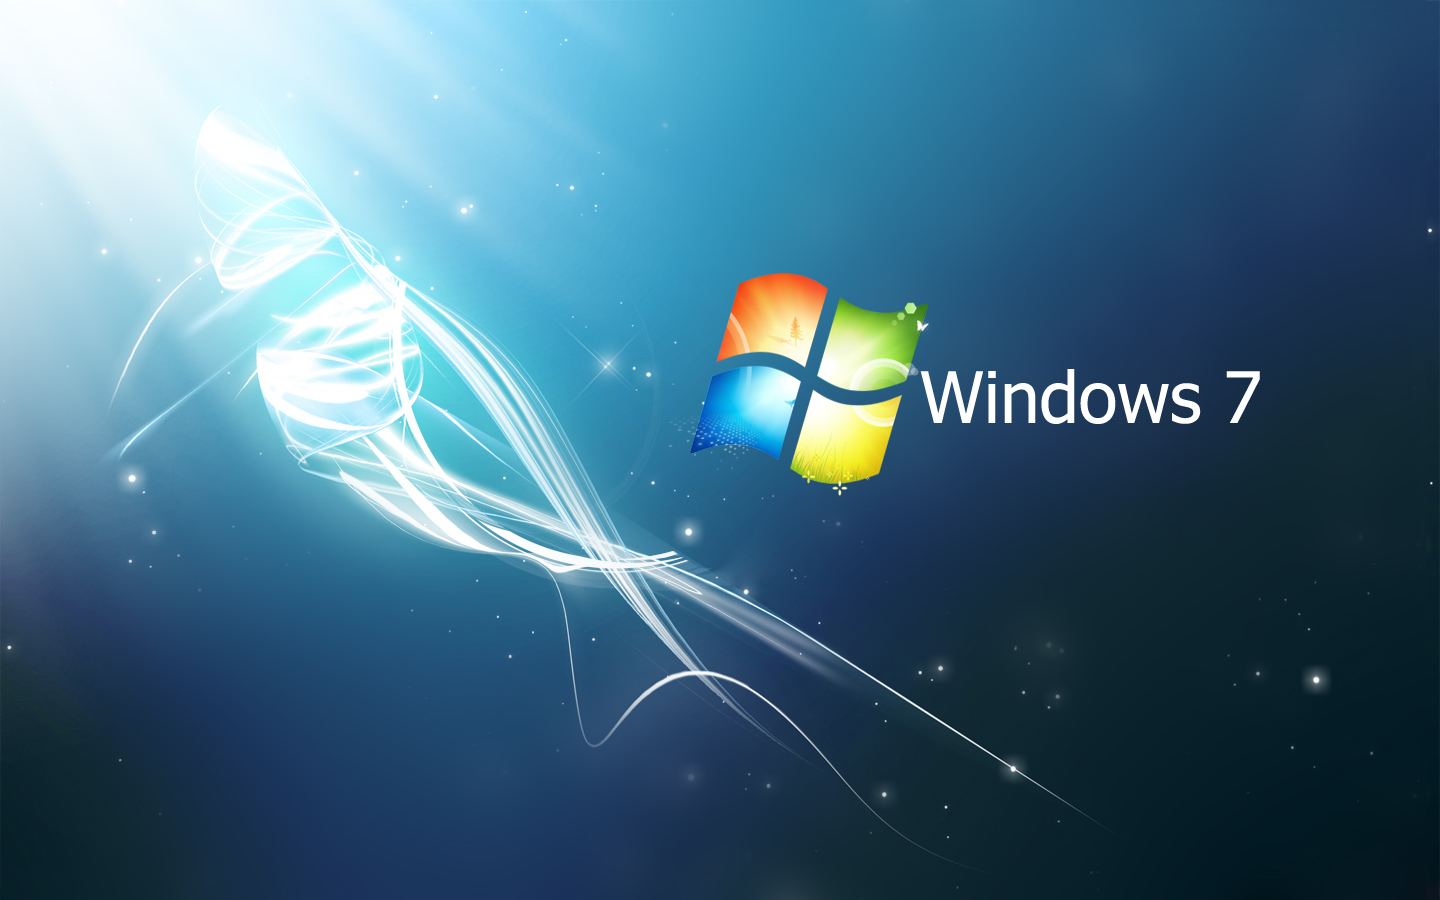 wallpaper: windows 7 crystal pack : blue - green - red hd wallpapers